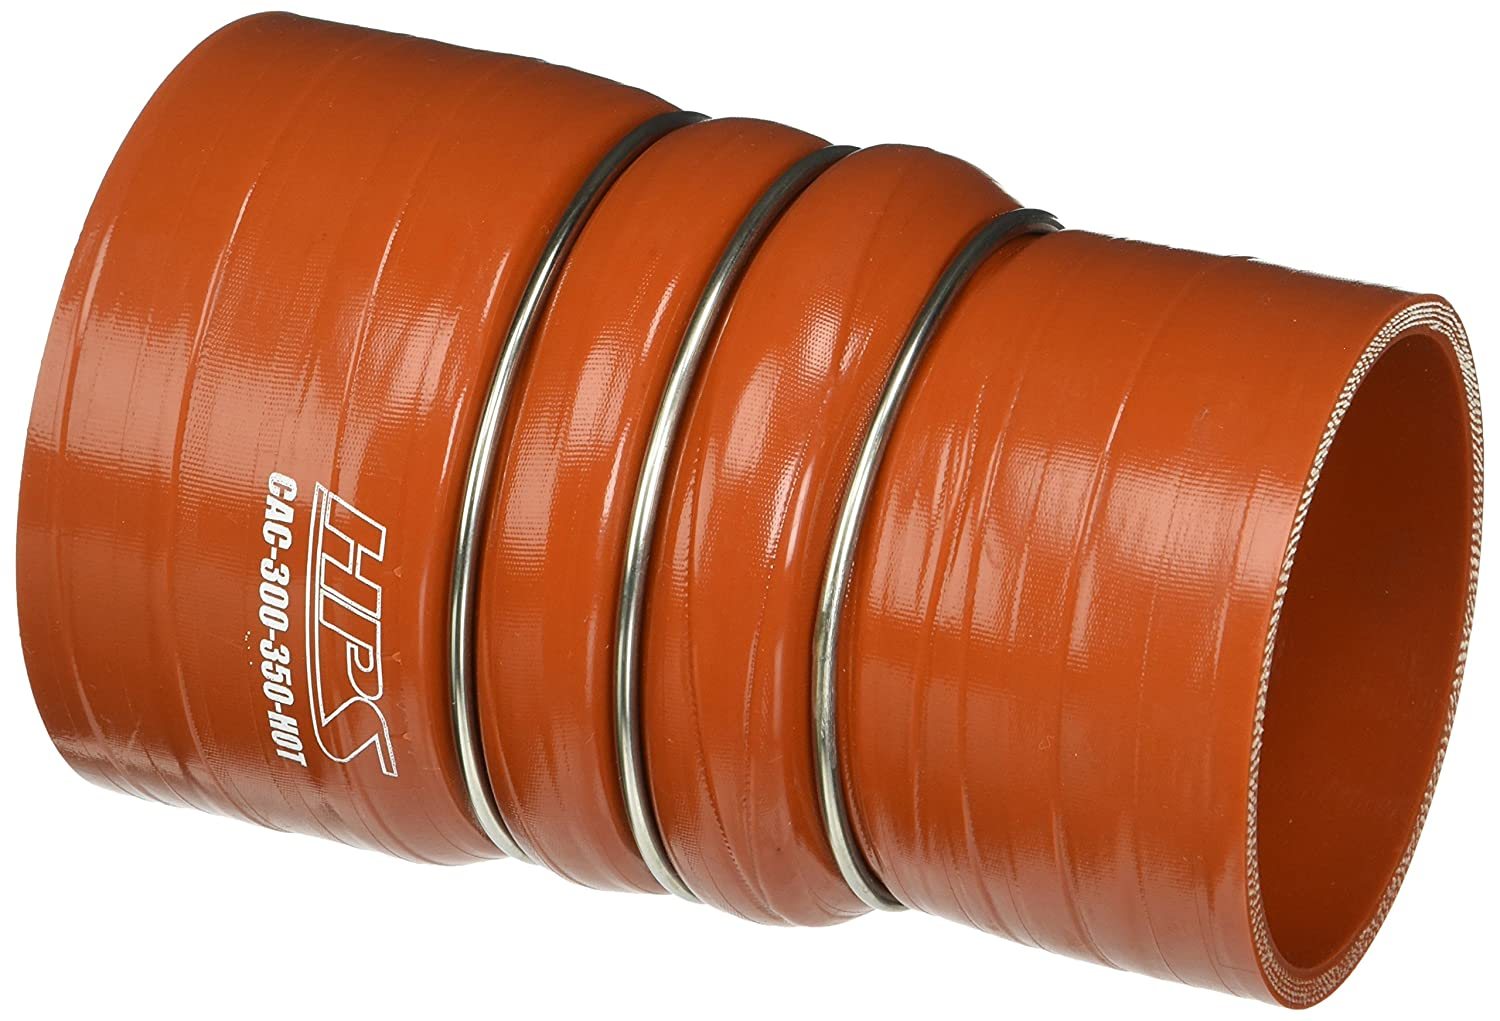 HPS CAC-300-350-HOT Silicone High Temperature 4-ply Aramid Reinforced Charge Air Cooler CAC Hose Hot Side, 100 PSI Maximum Pressure, 6' Length, 3' > 3-1/2' ID, Orange 6 Length 3 > 3-1/2 ID HPS Silicone Hoses